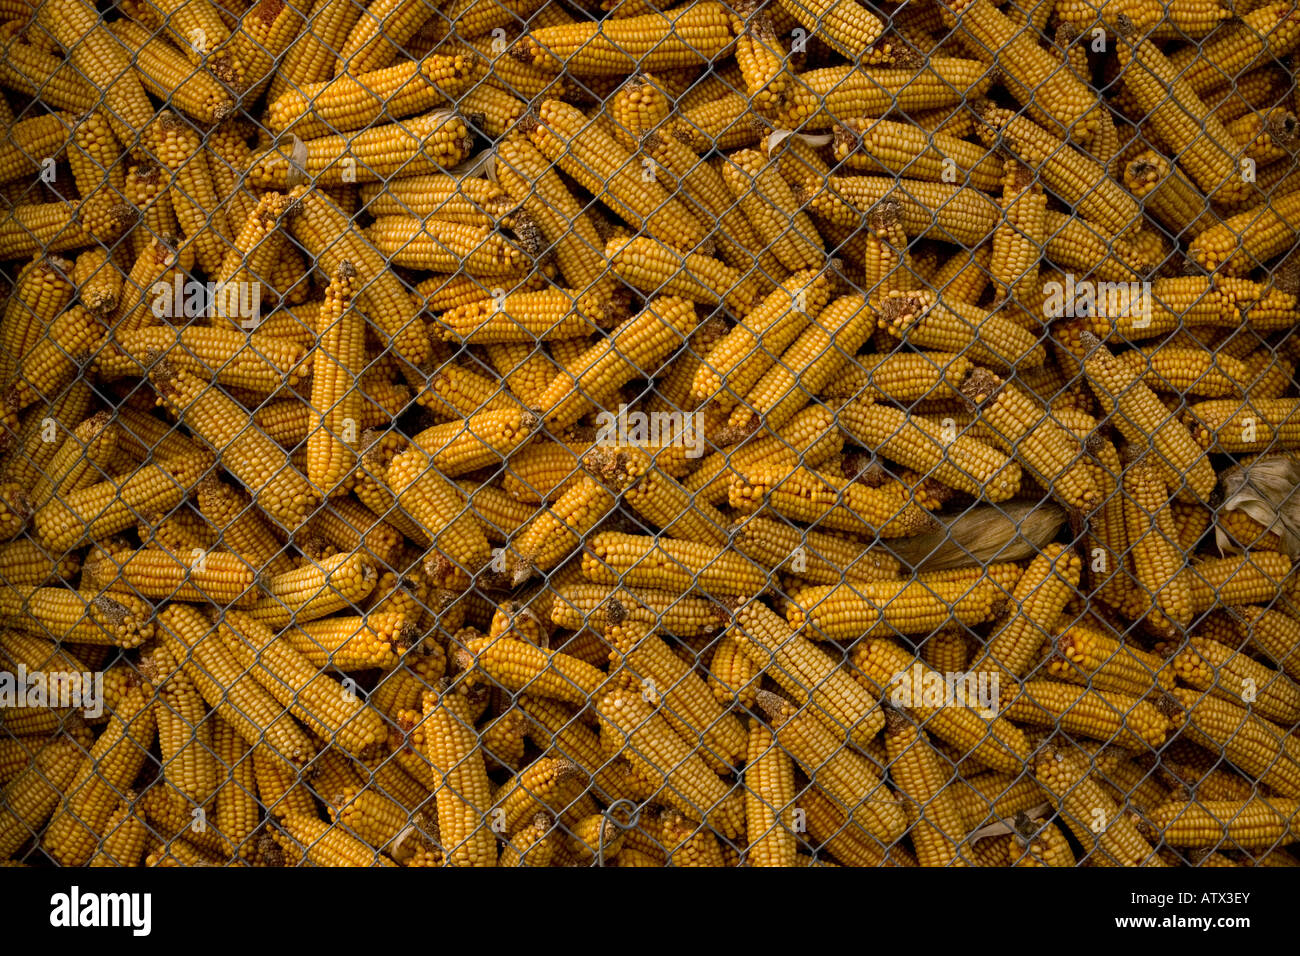 Maize (Zea mays) in storage, Rhine Valley, France, Europe - Stock Image